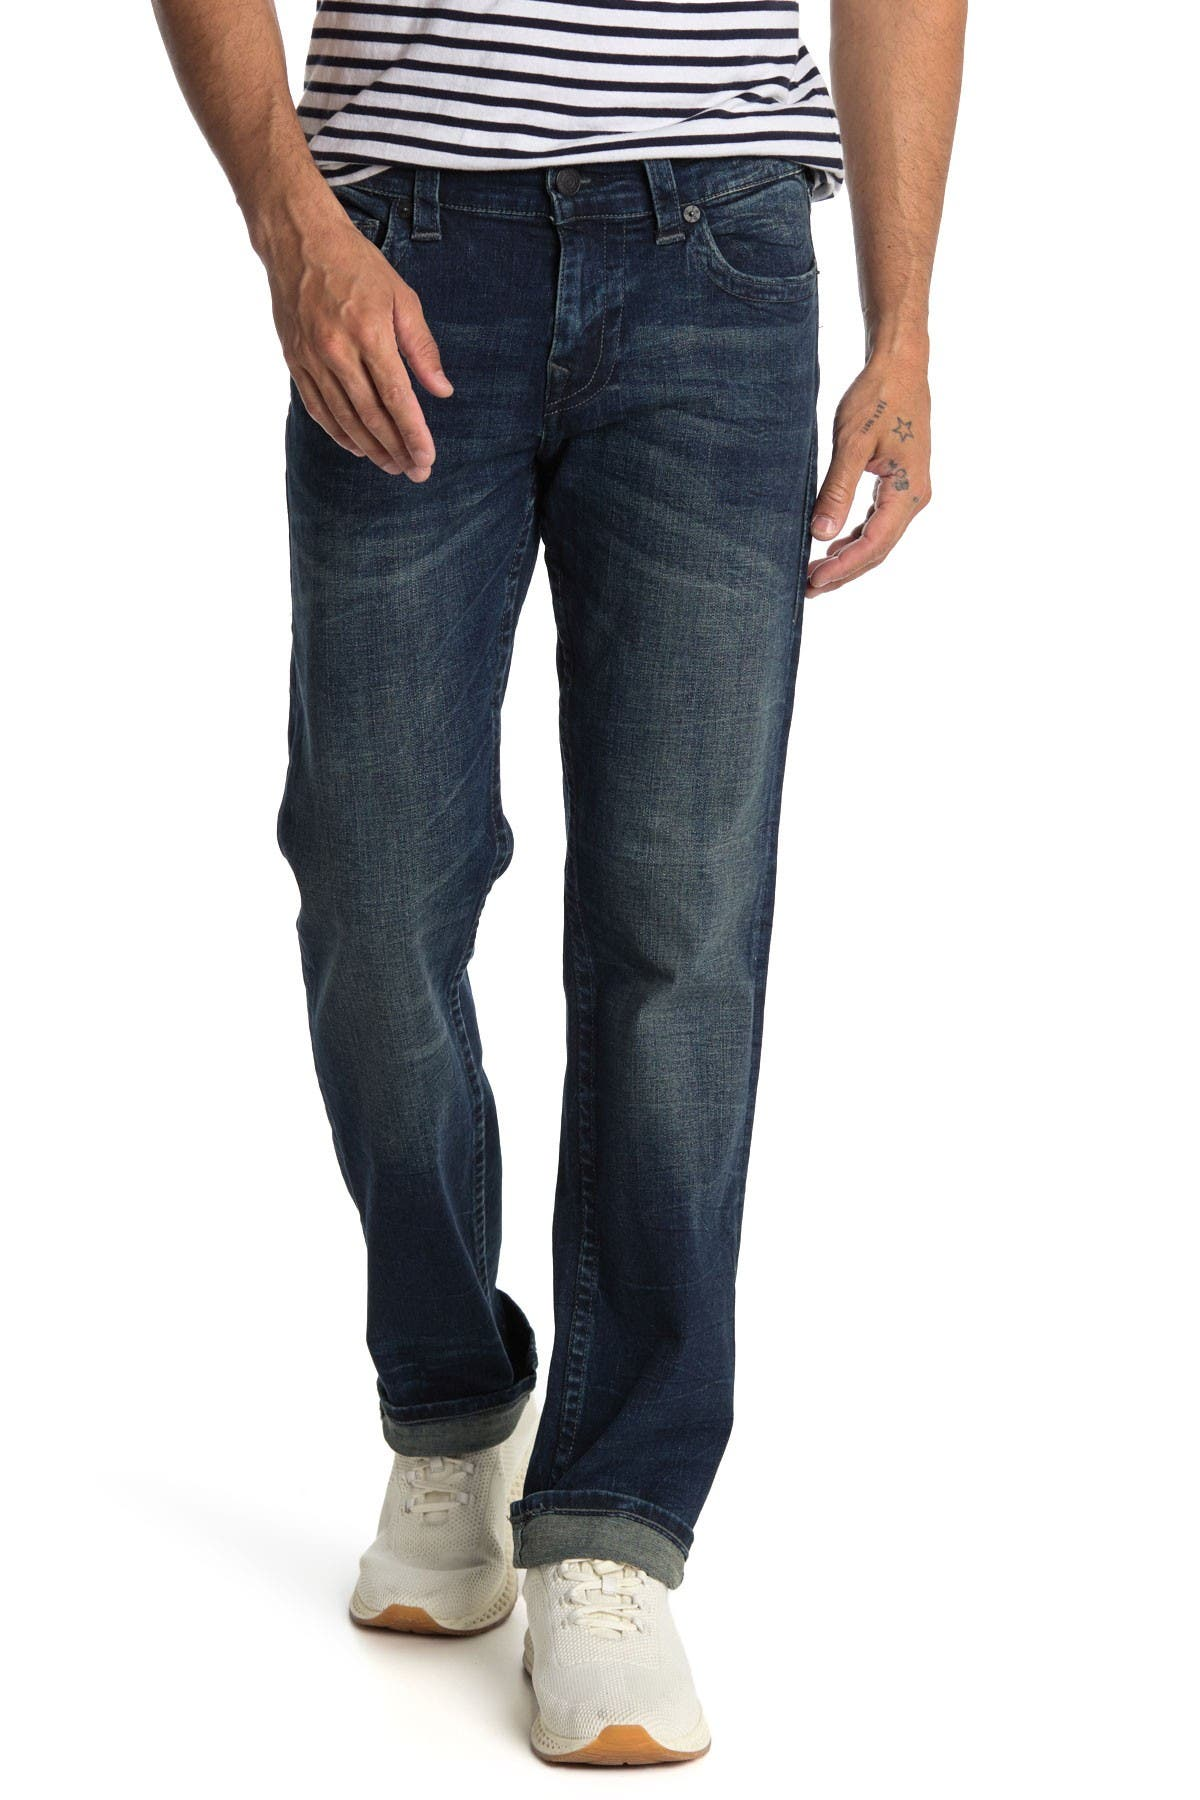 Image of True Religion Ricky Straight Fit Jeans